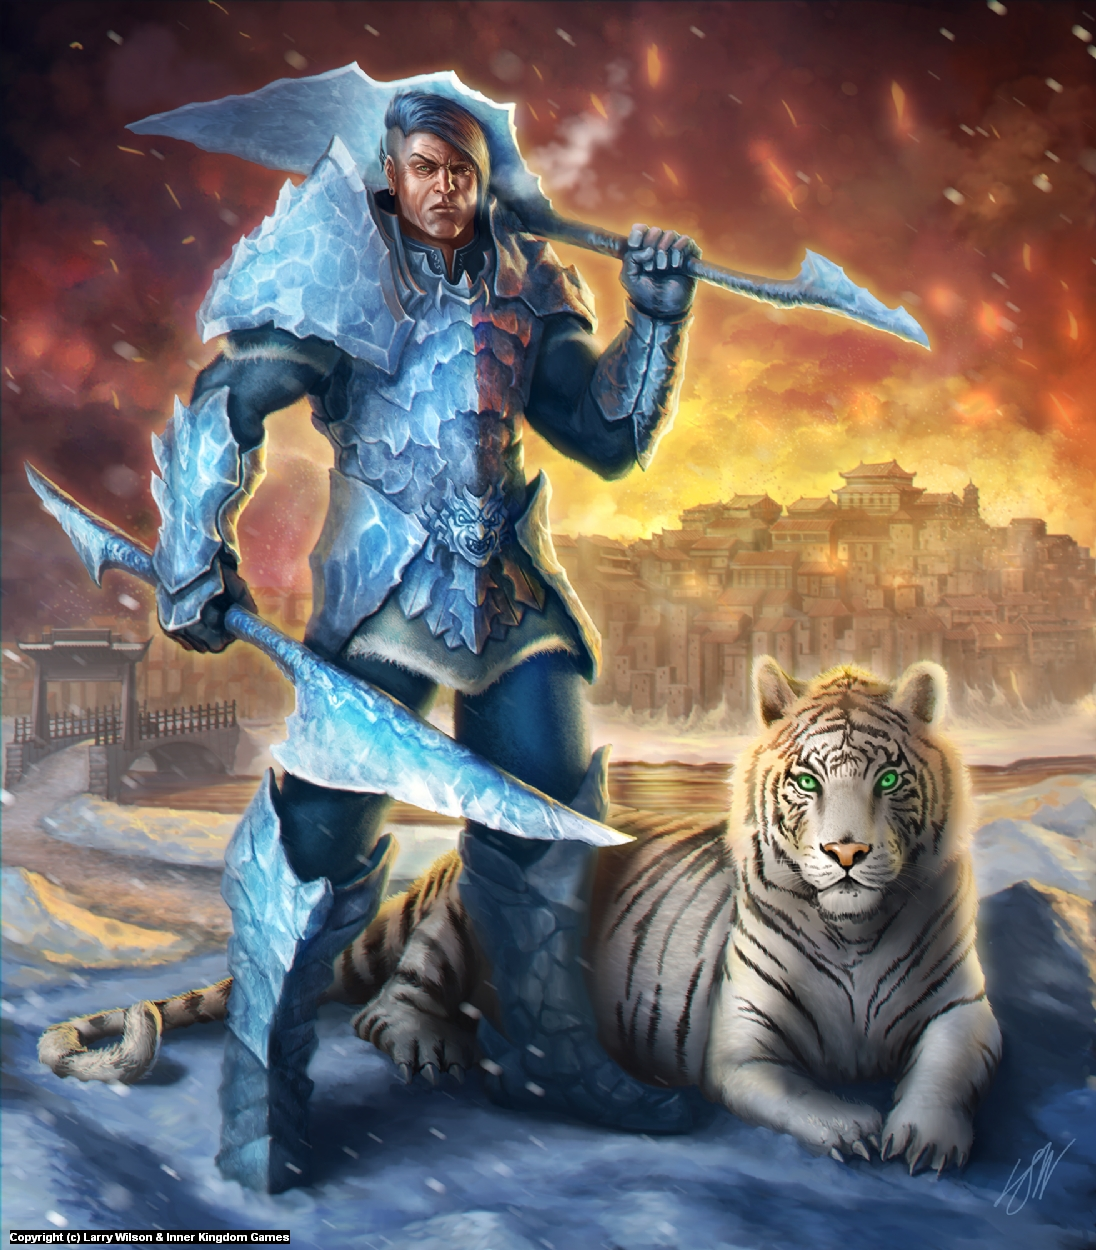 Captain of the Guard - The Frozen Throne Artwork by Larry wilson